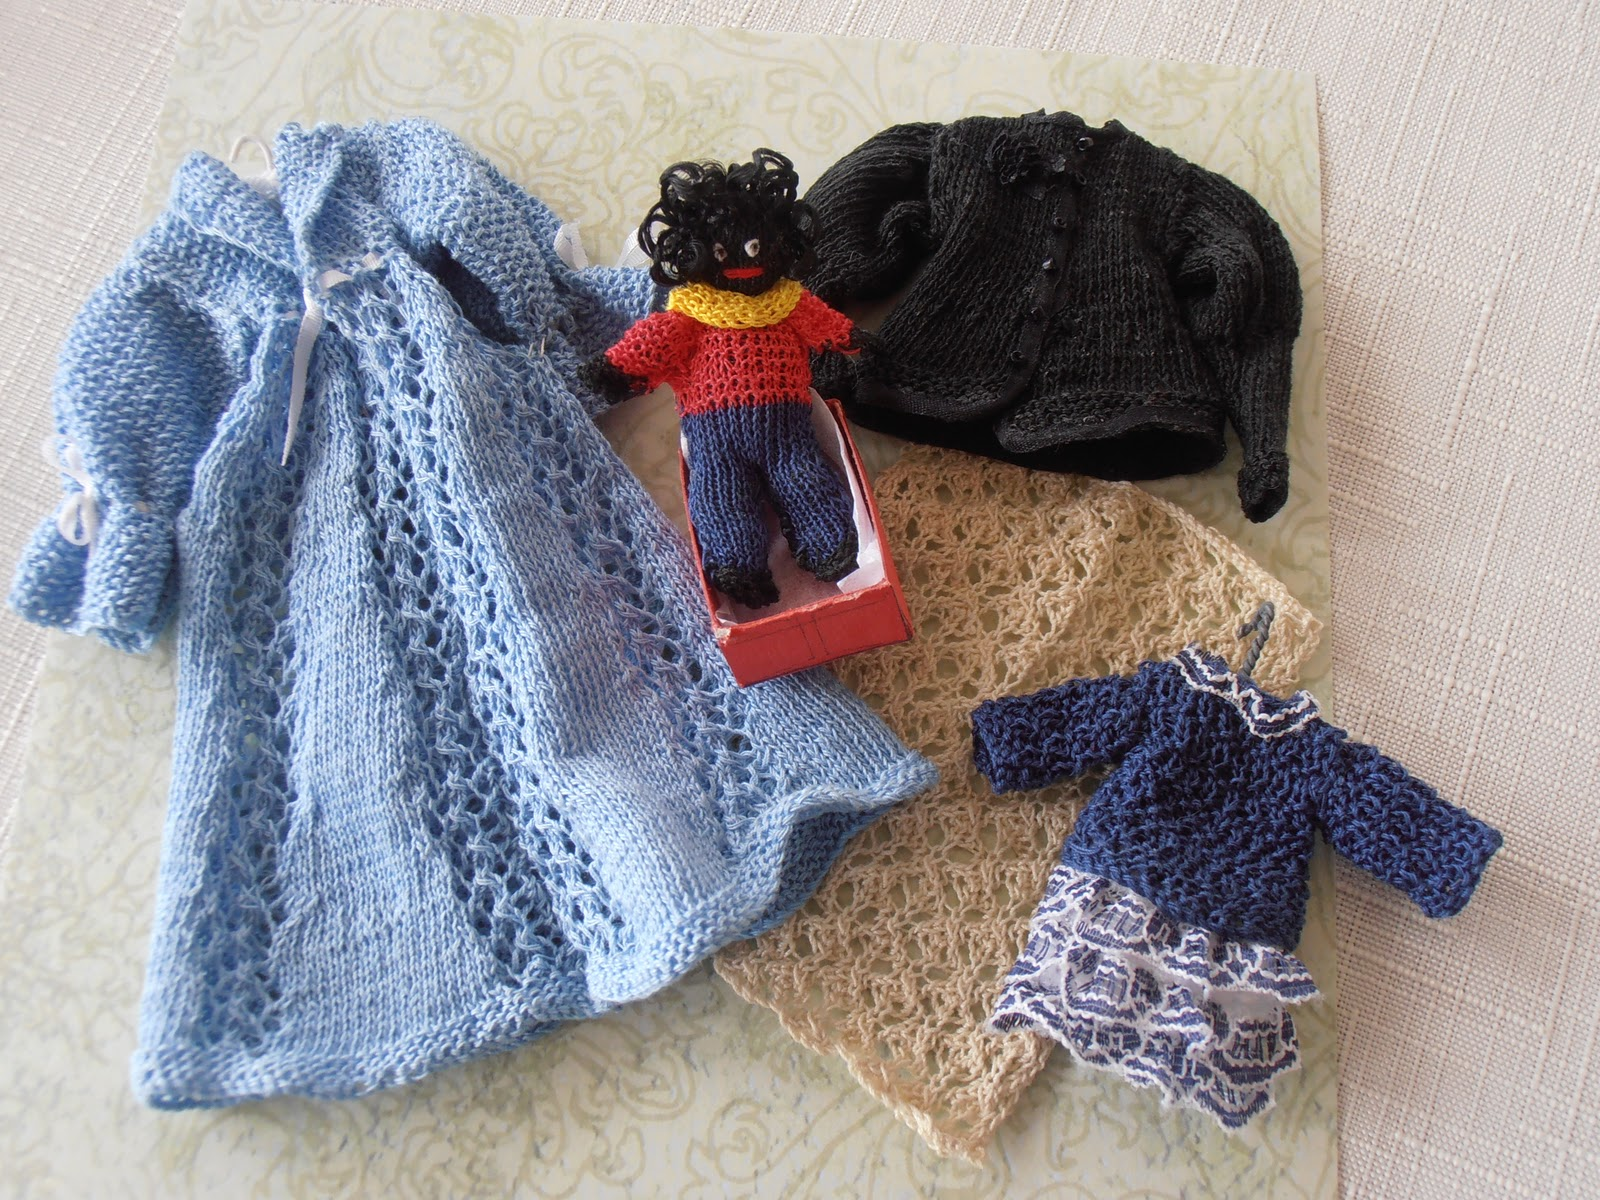 Knitting Patterns For Dolls Houses : dolls houses and minis: October 2011